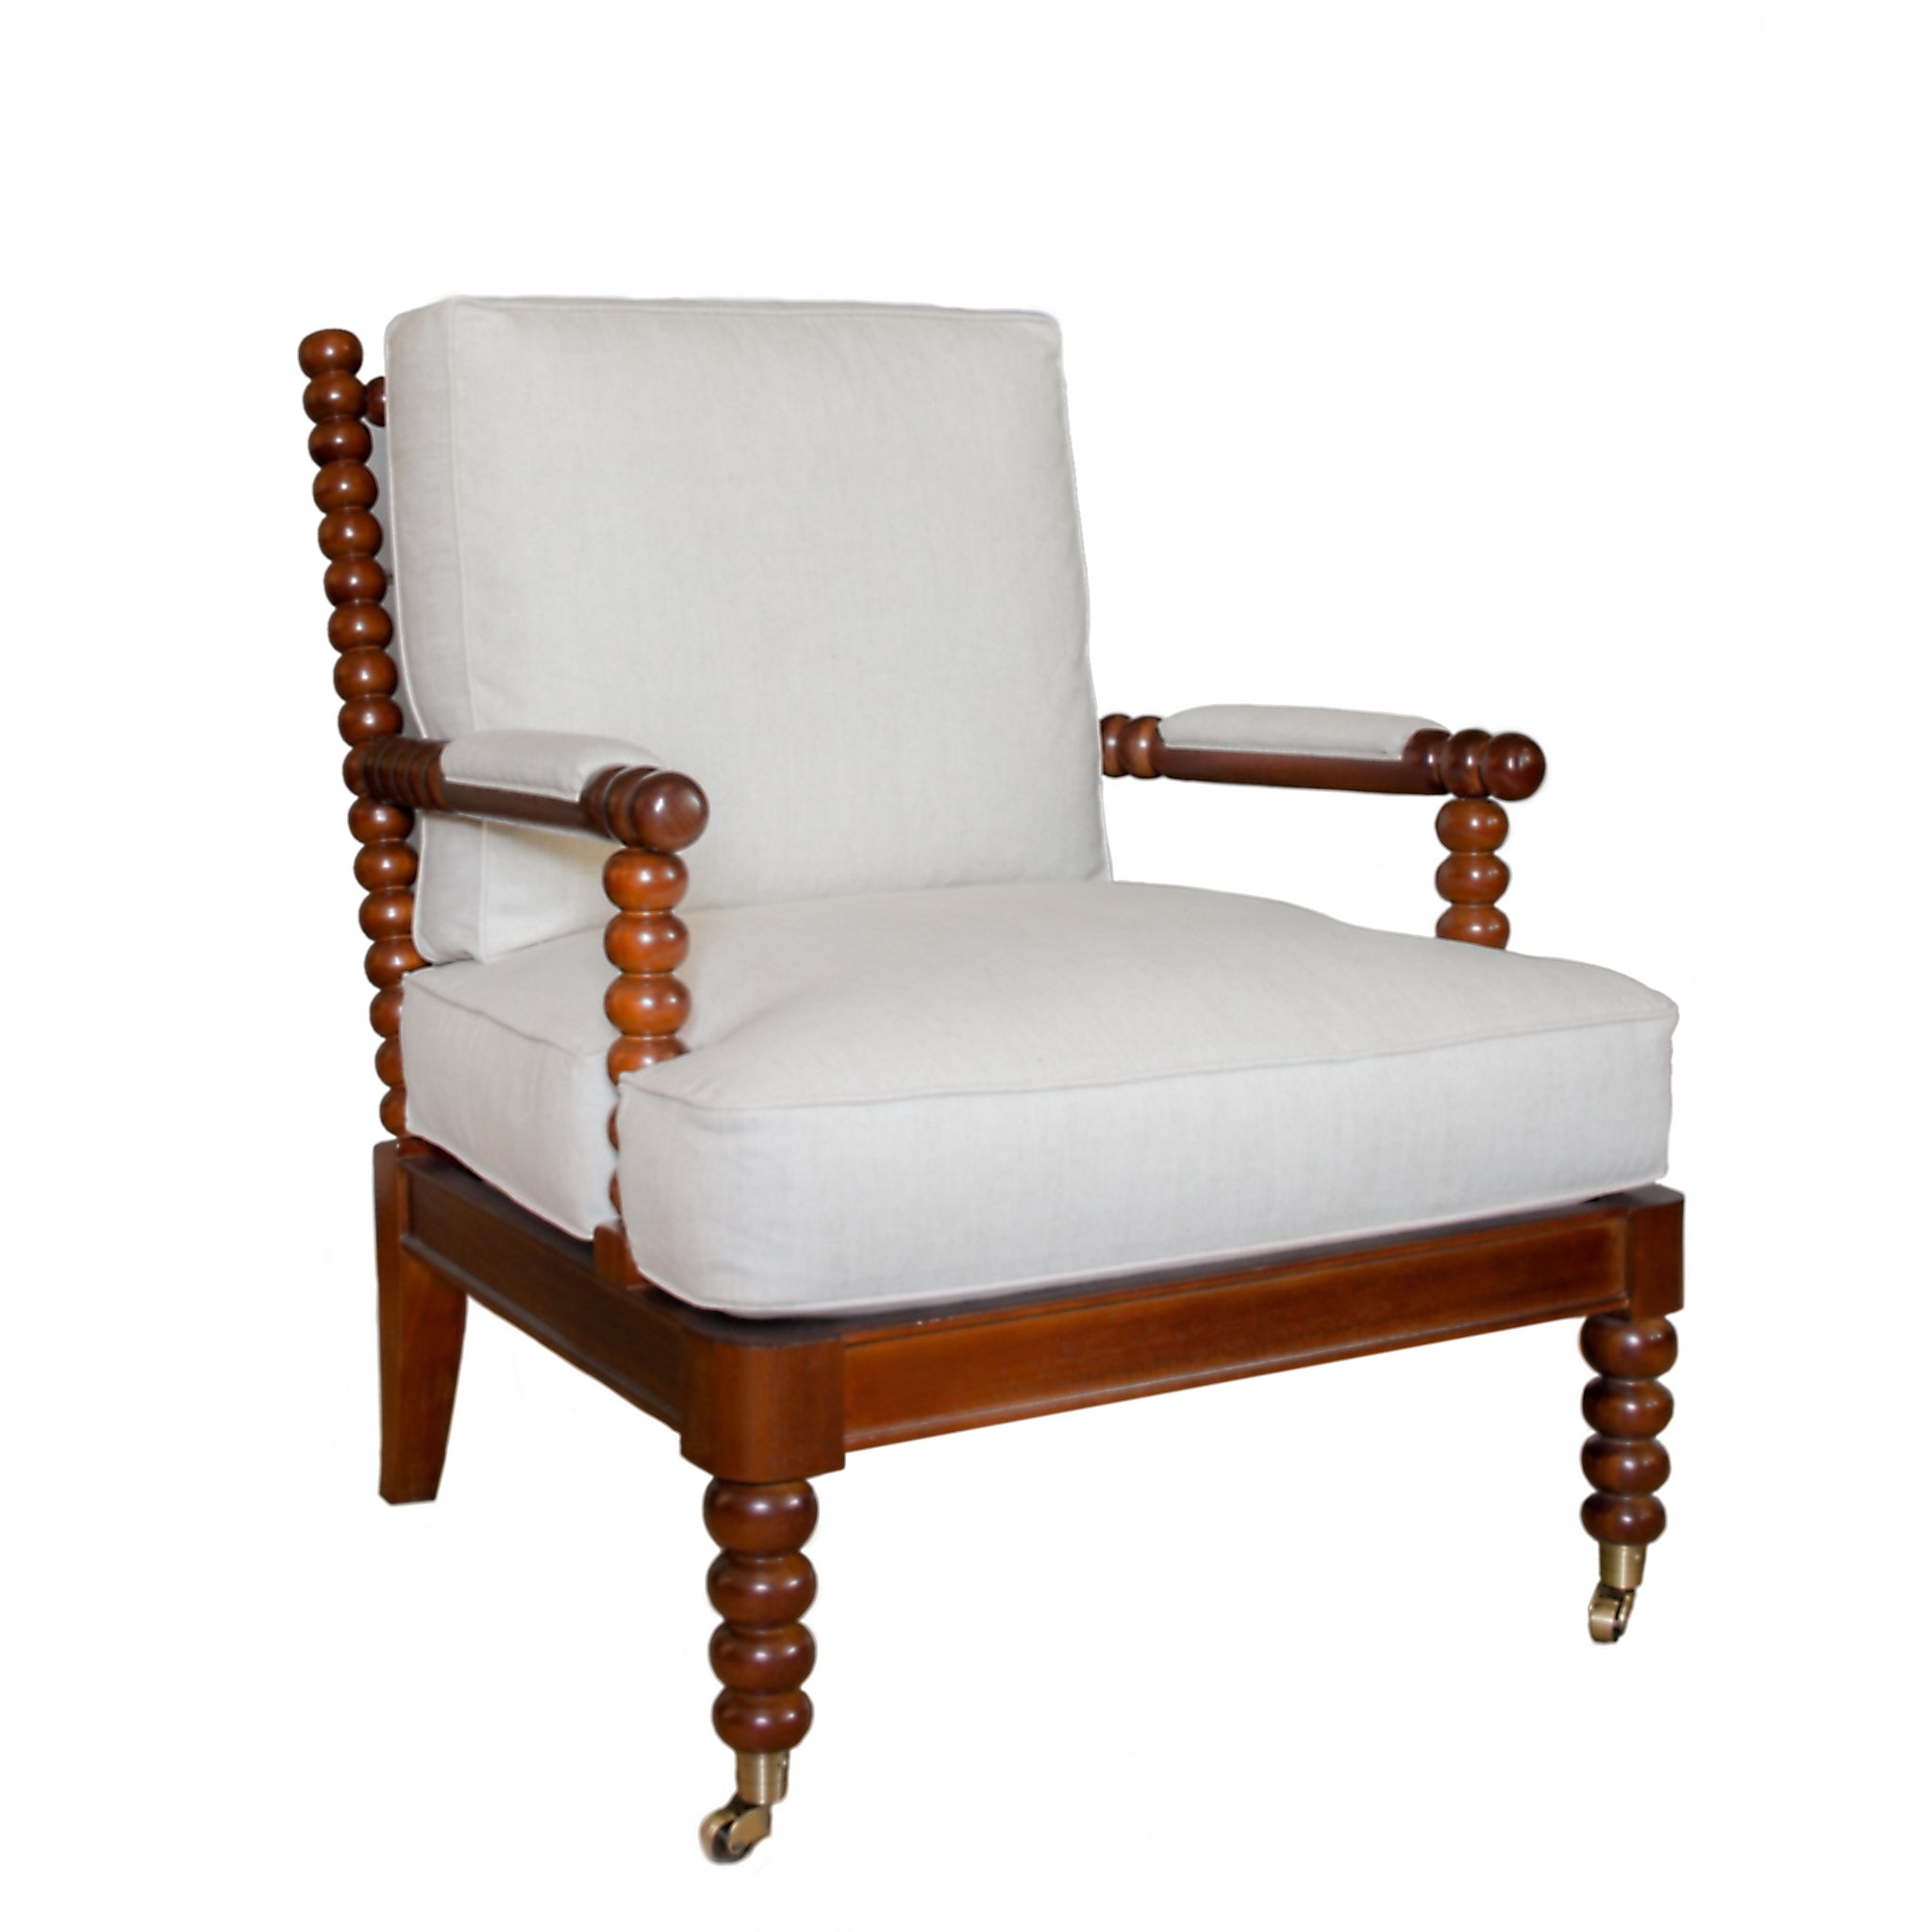 The Spool chair profile in white